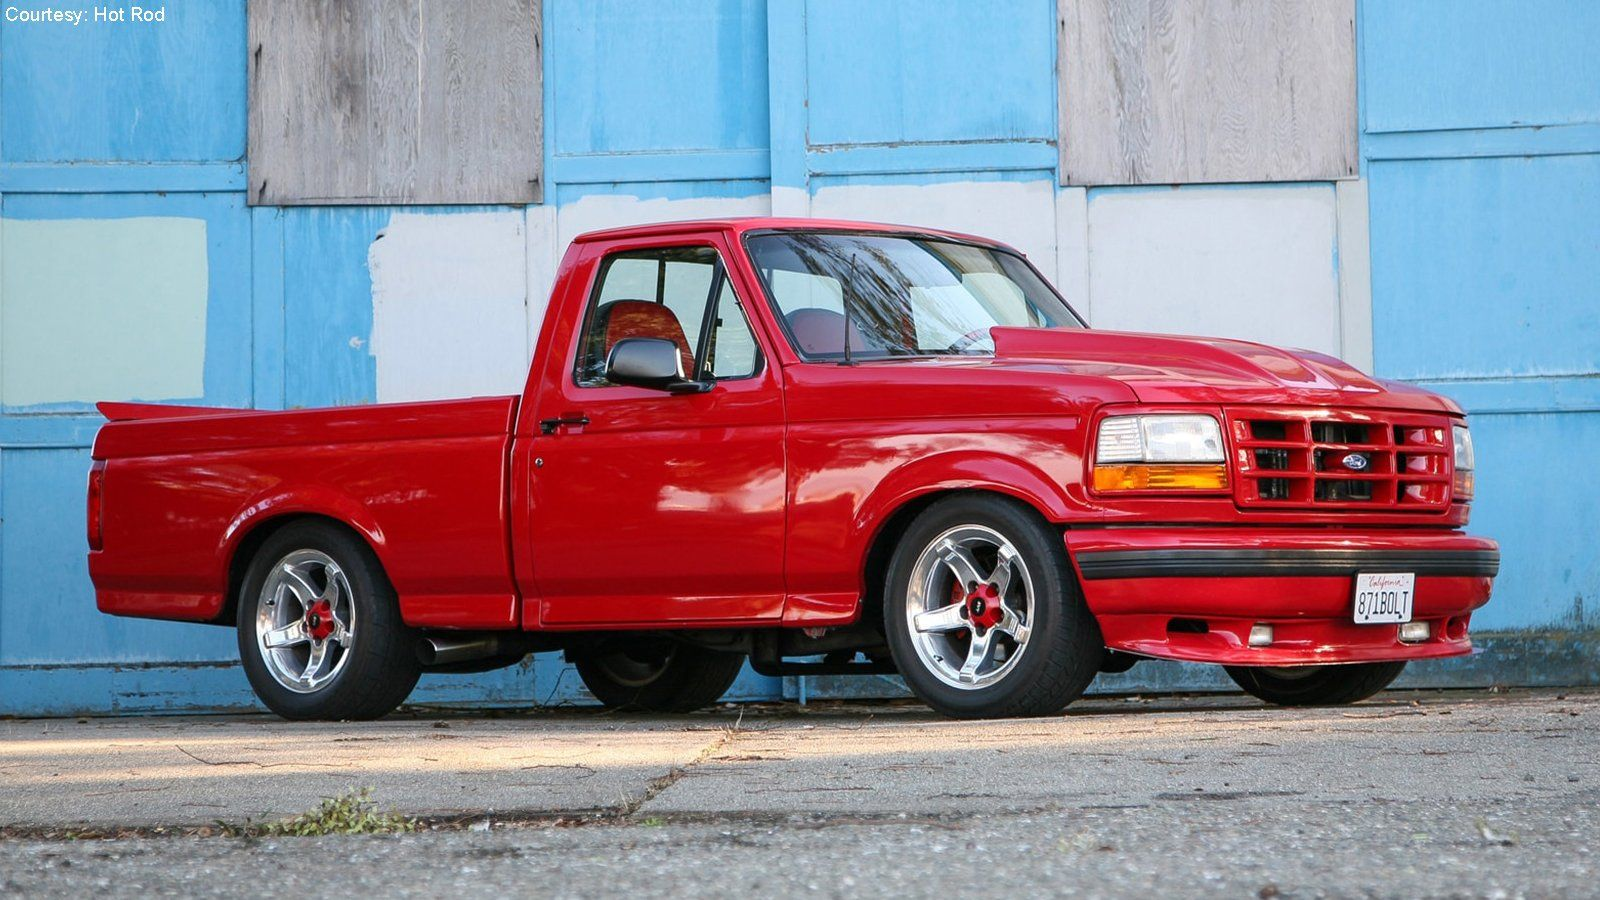 One Of A Kind 1993 Lightning With Windsor Power En 2020 Camiones Bajados Camionetas Ford Camioneta Ford F150